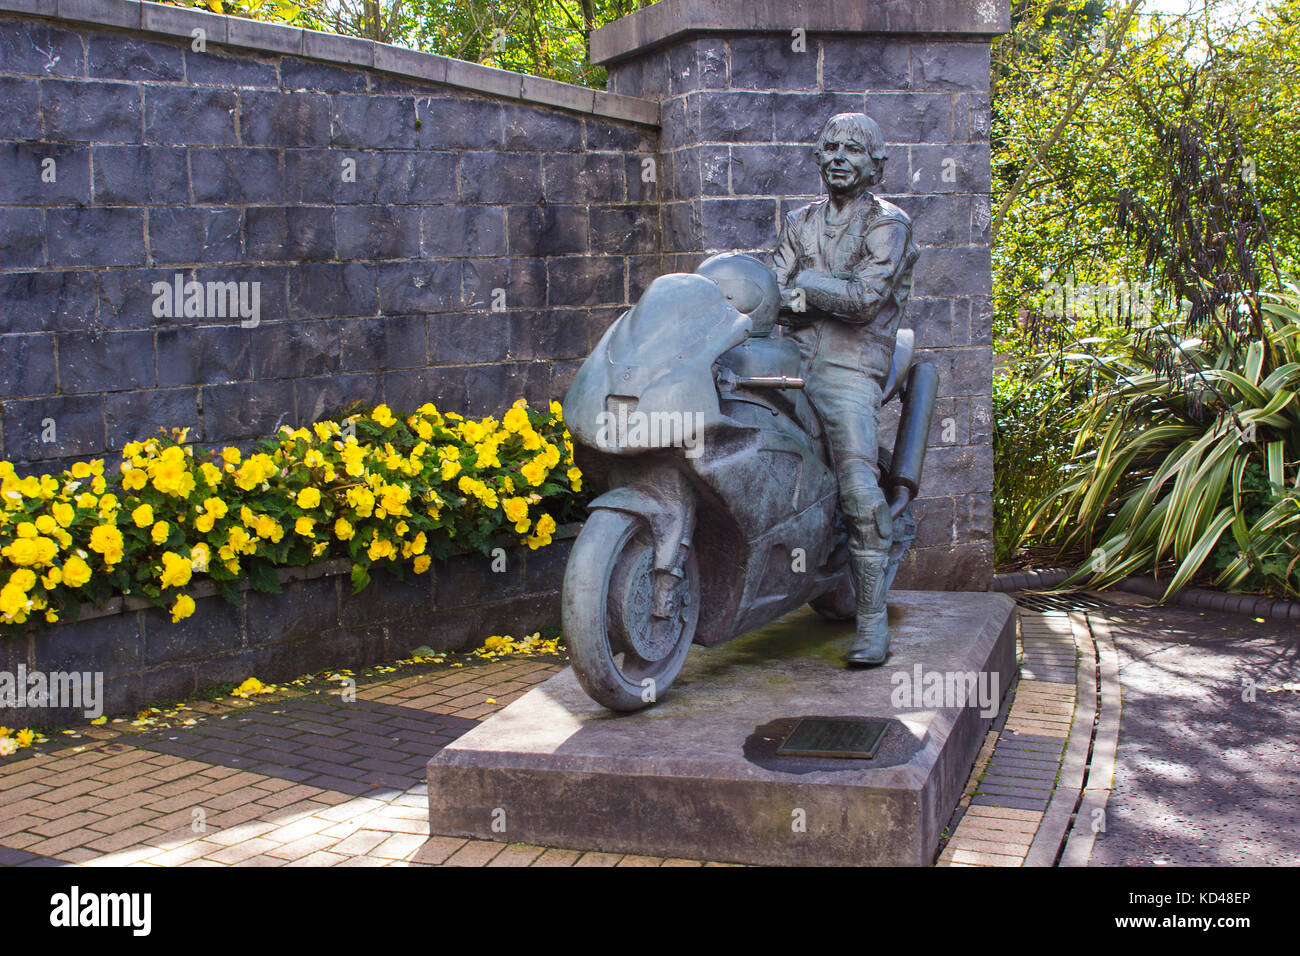 The memorial garden to the late Joey Dunlop older brother of Robert Dunlop in Ballymoney, County Antrim, Northern - Stock Image